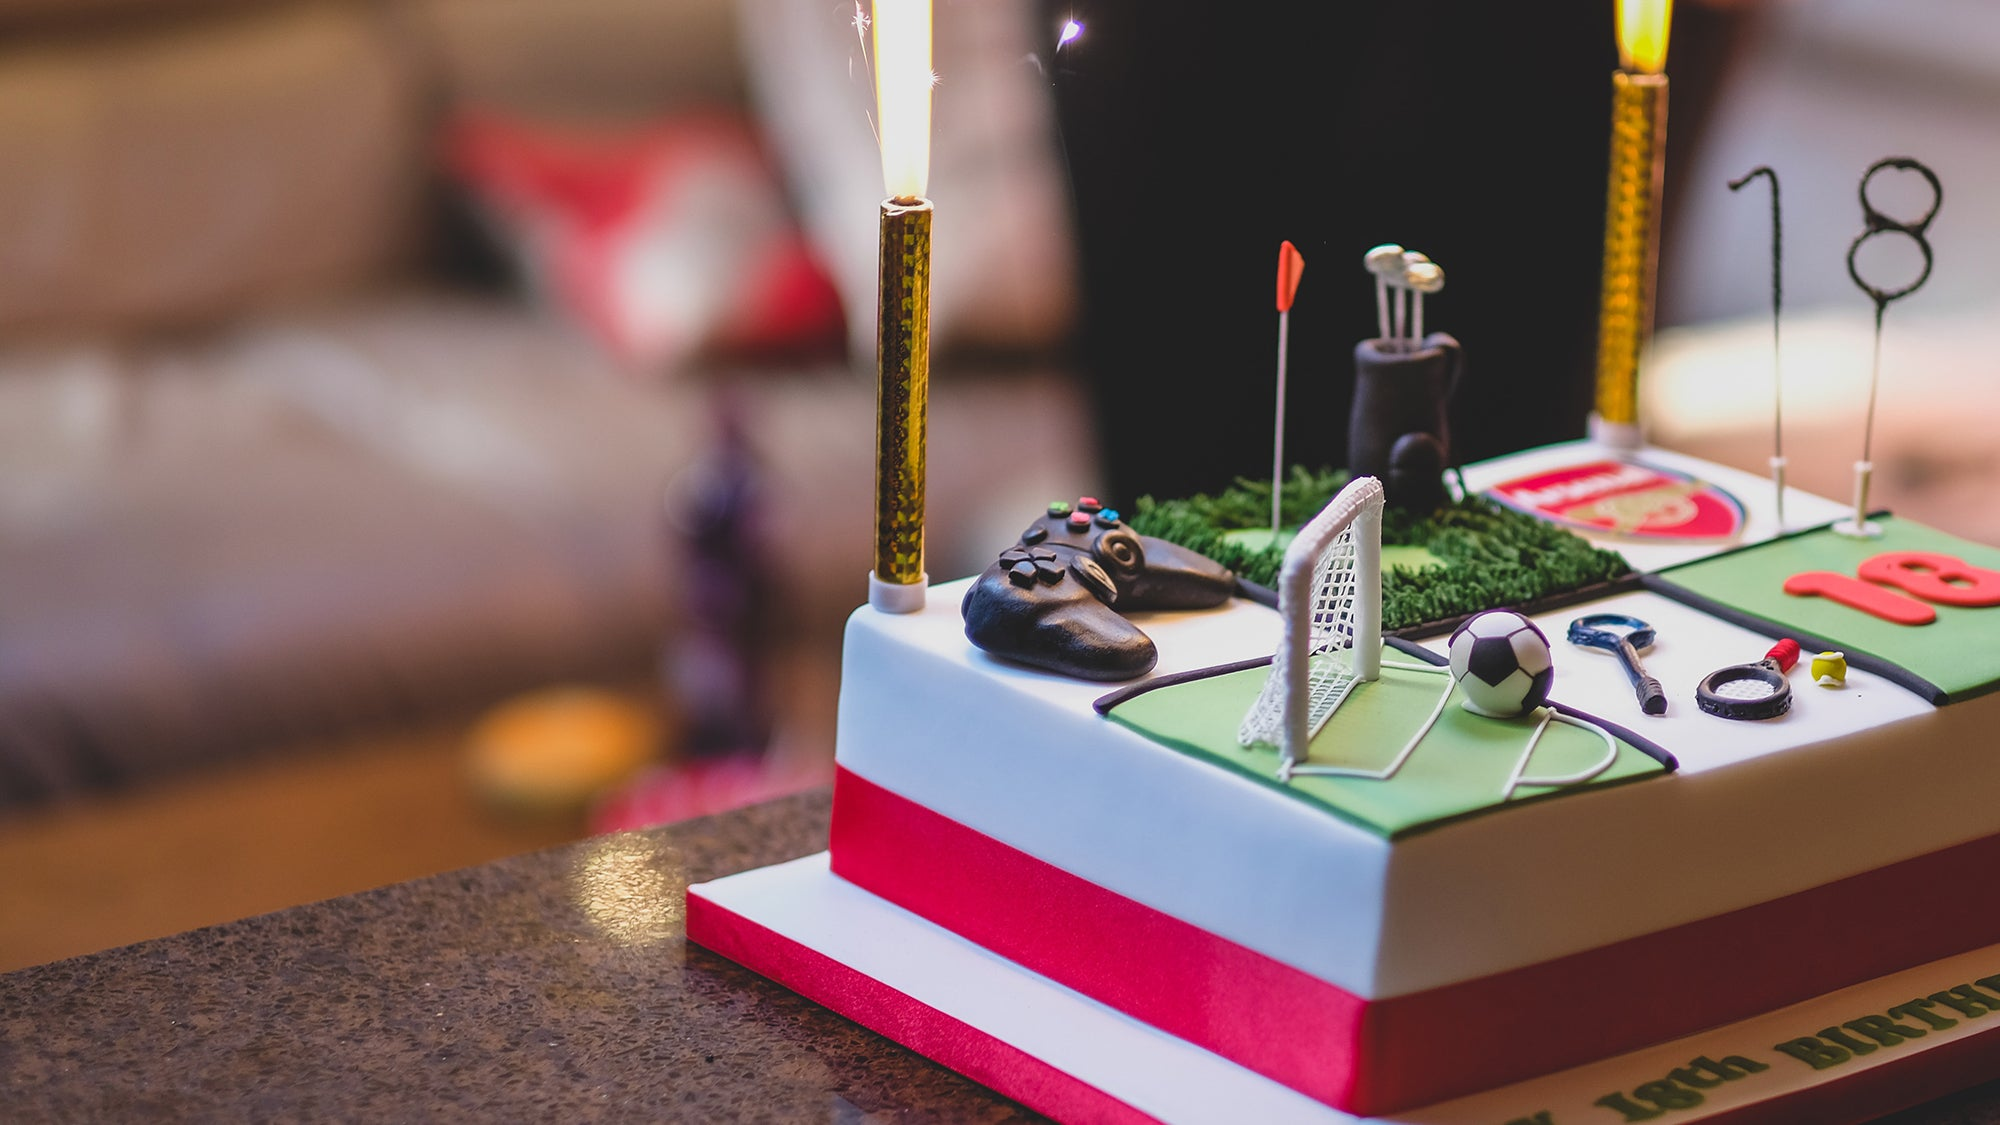 rectangular 18th birthday cake with sparklers and games on it